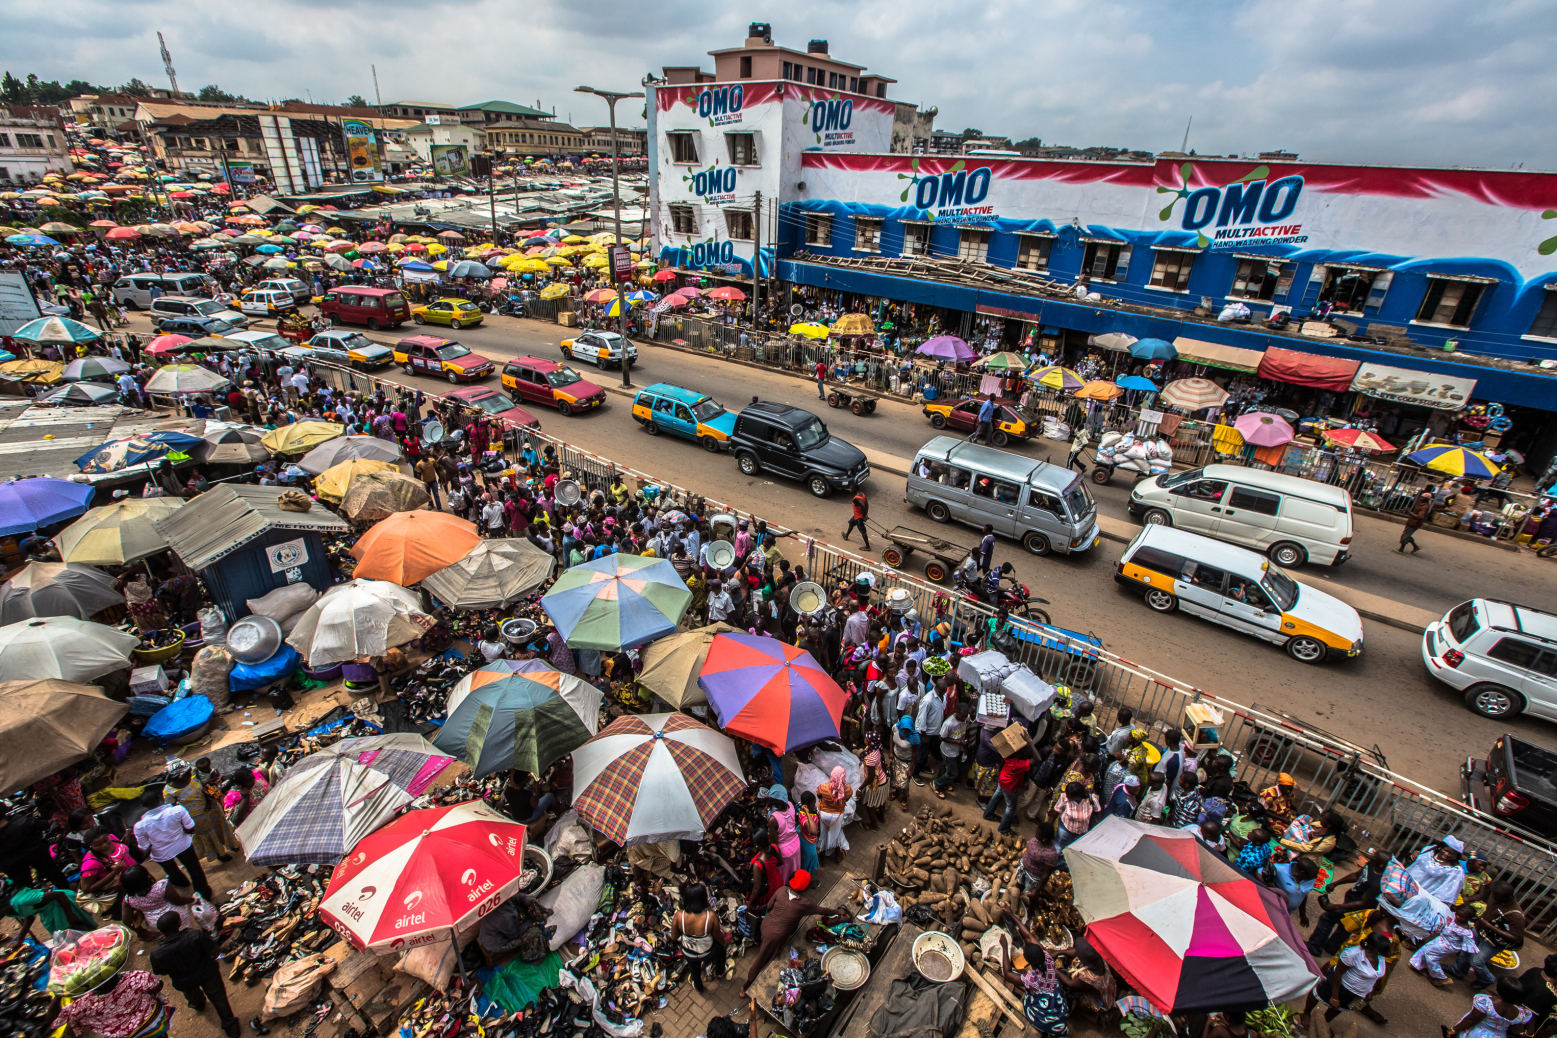 Kejetia Market | Kumasi, Ghana Attractions - Lonely Planet